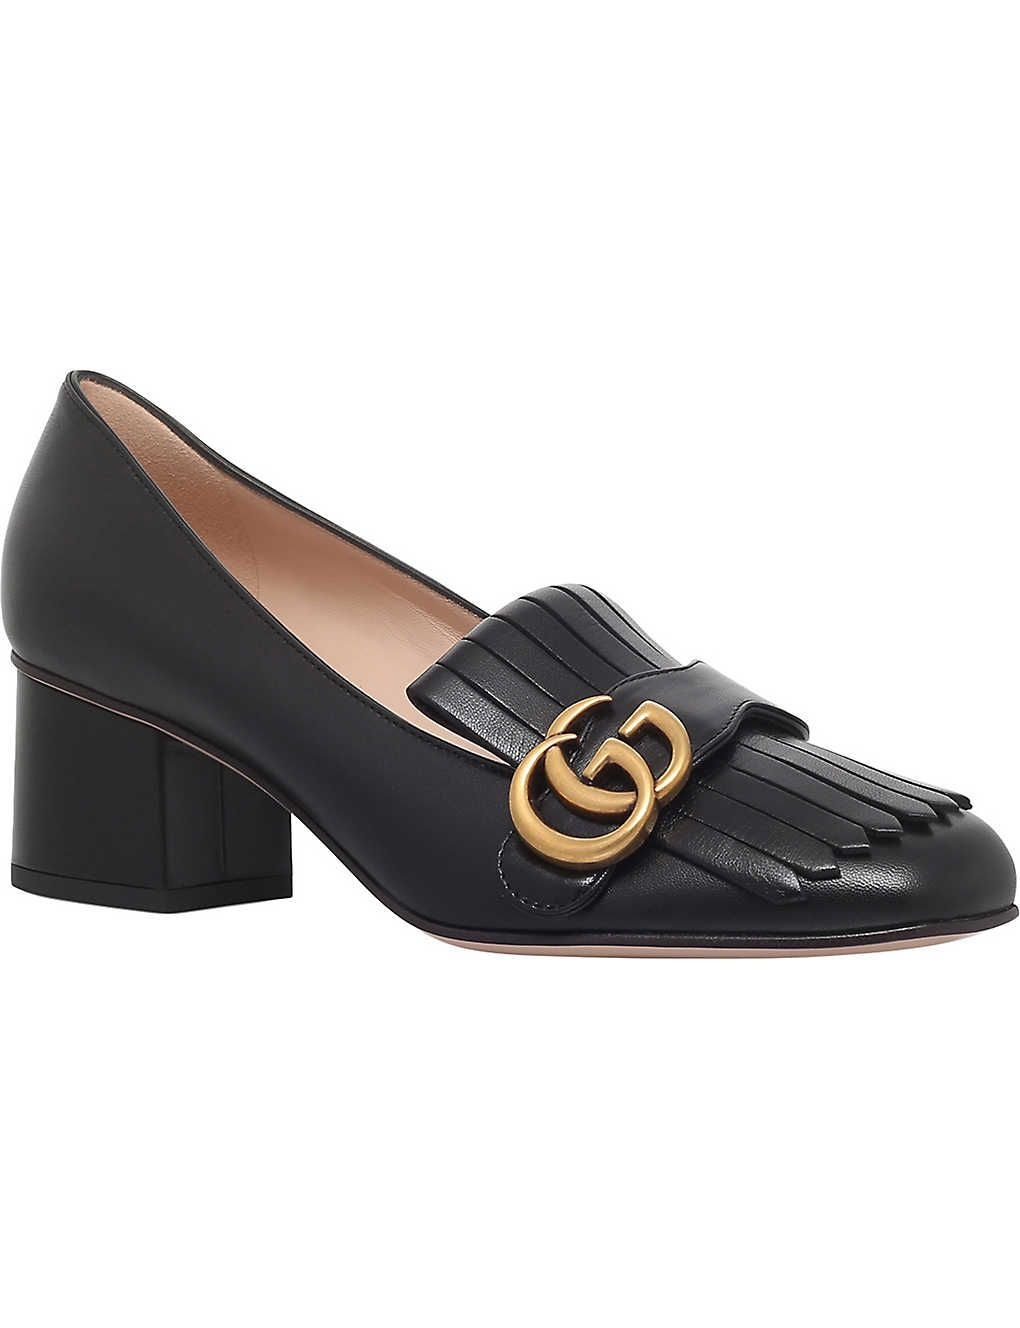 GUCCI Marmont 55 leather mid-heel